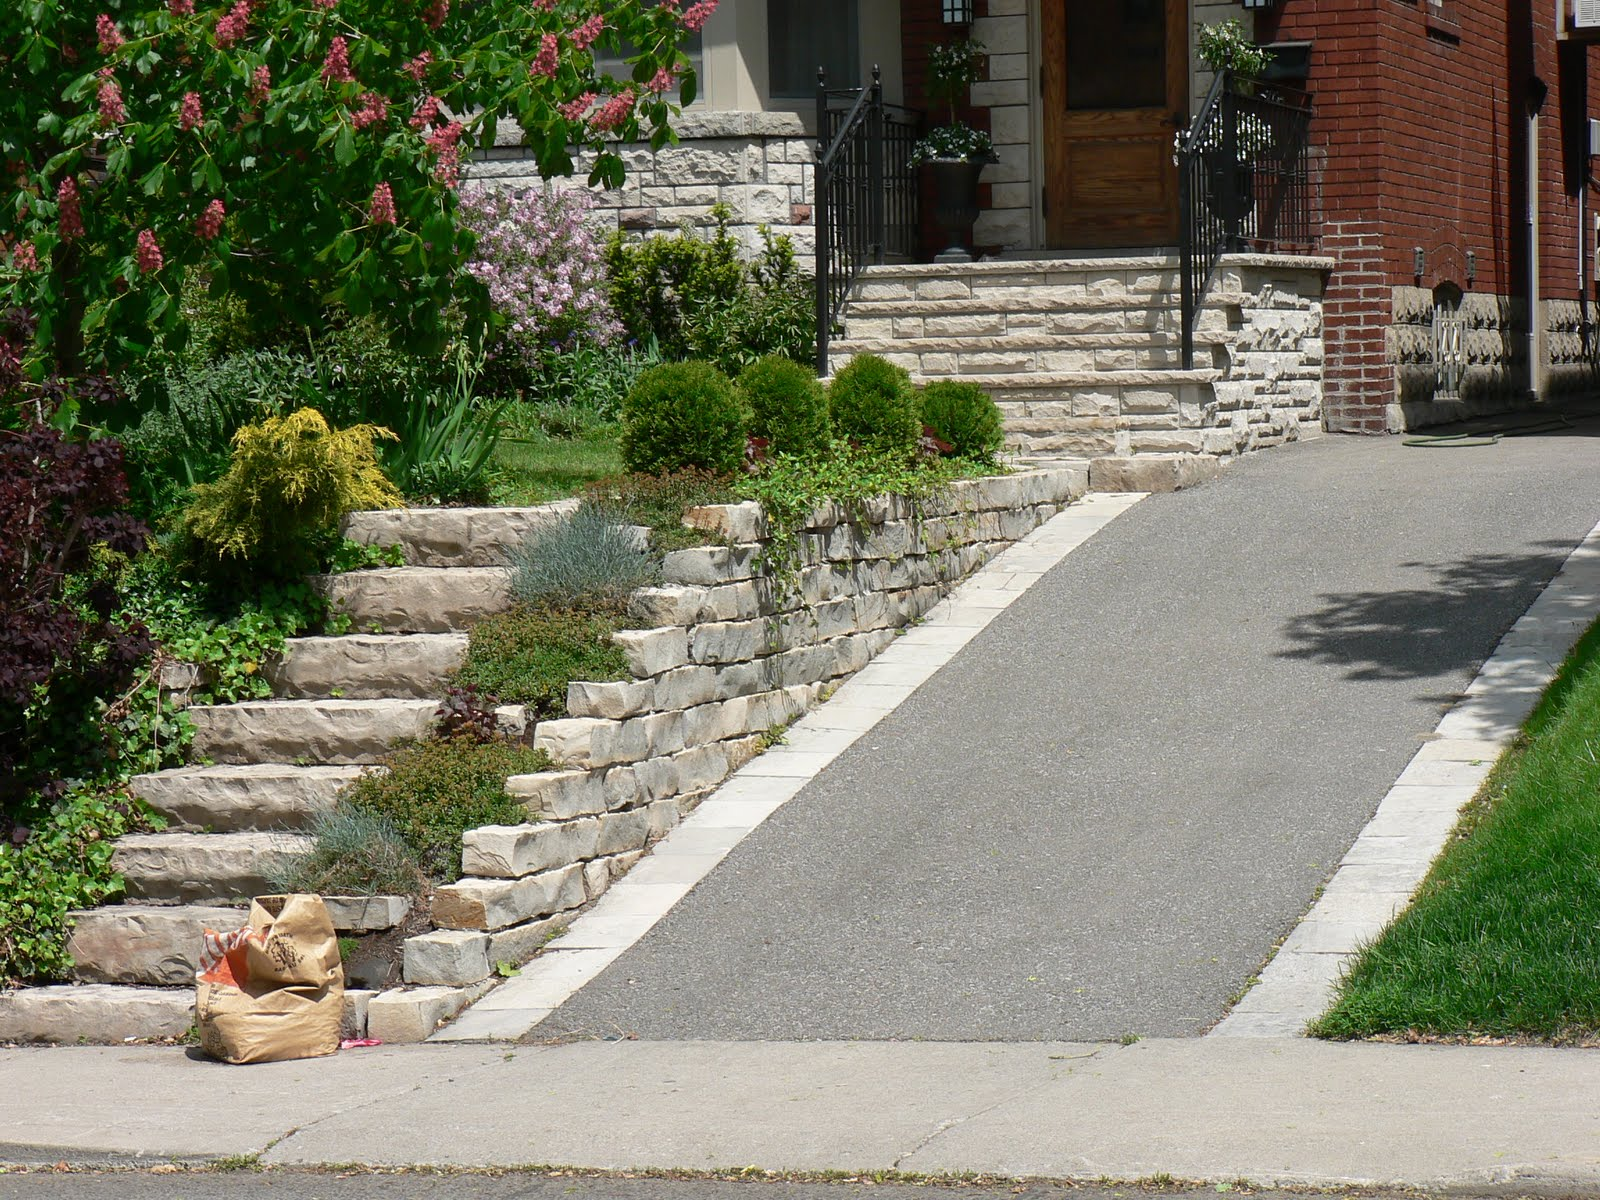 Total Home Contractors Ltd: Driveways and Landscaping